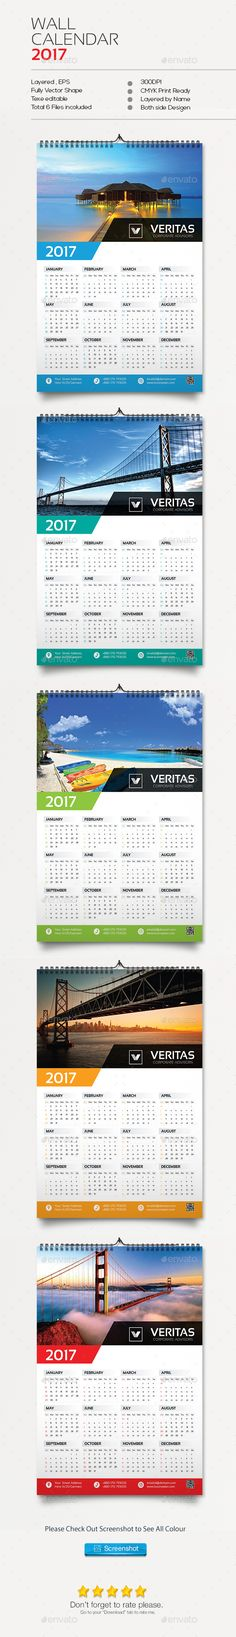 Page Wall Calendar   Calendar  Wall Calendars And Design